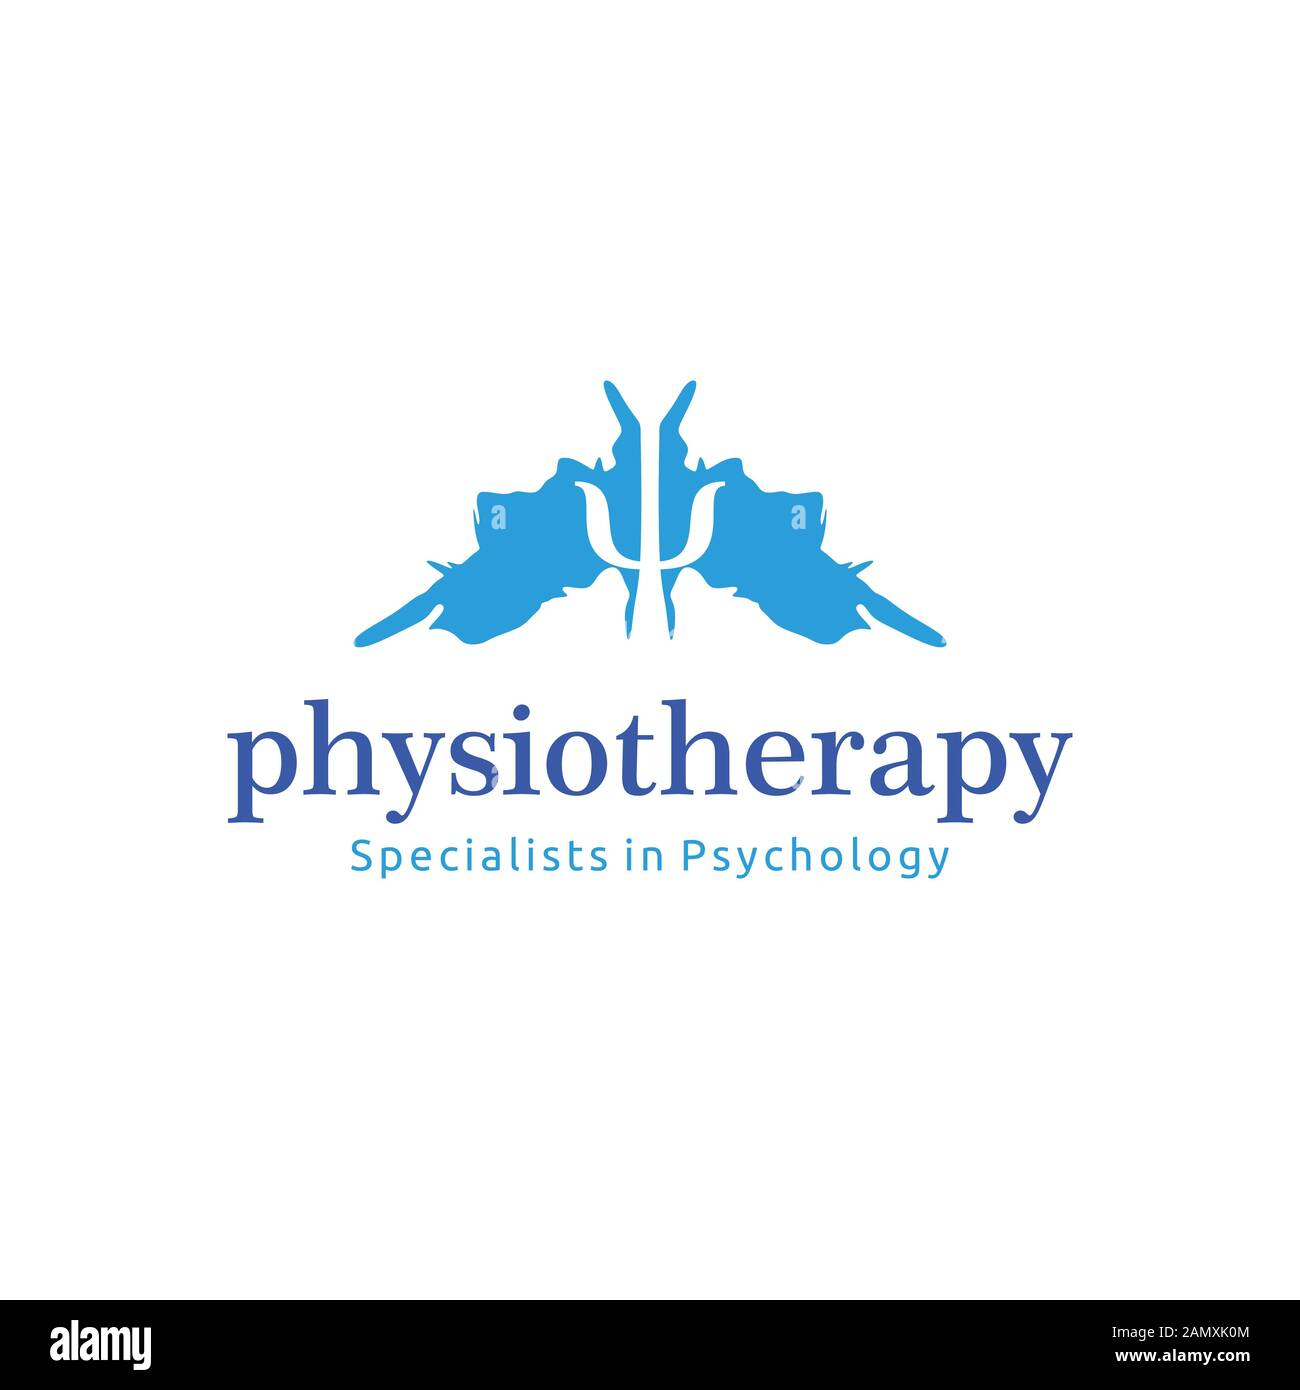 Physiotherapy Psychology Logo Ideas Inspiration Logo Design Template Vector Illustration Isolated On White Background Stock Vector Image Art Alamy